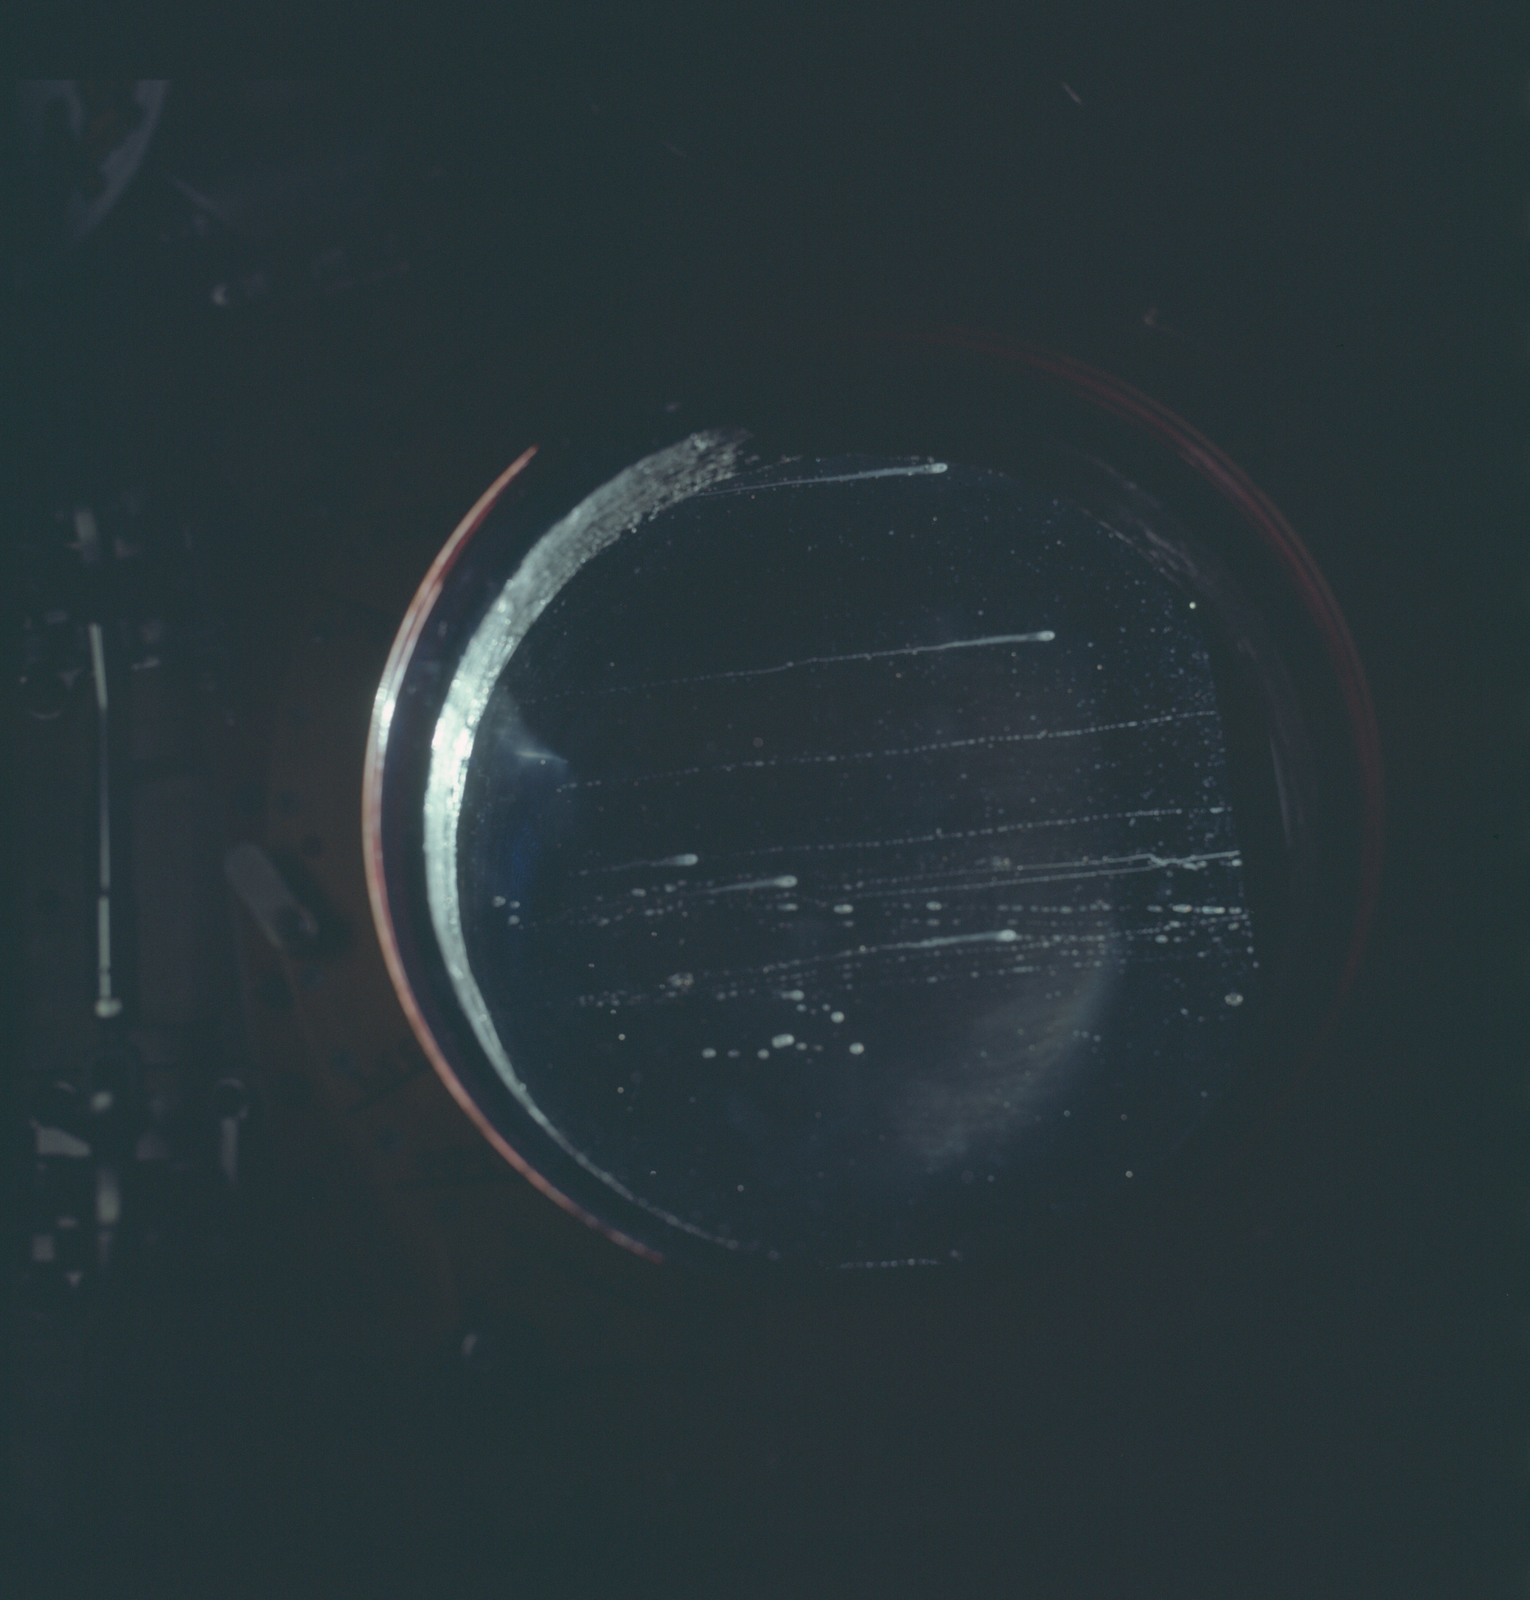 AS12-50-7368 - Apollo 12 - Apollo 12 Mission image  - View of fouled hatch window